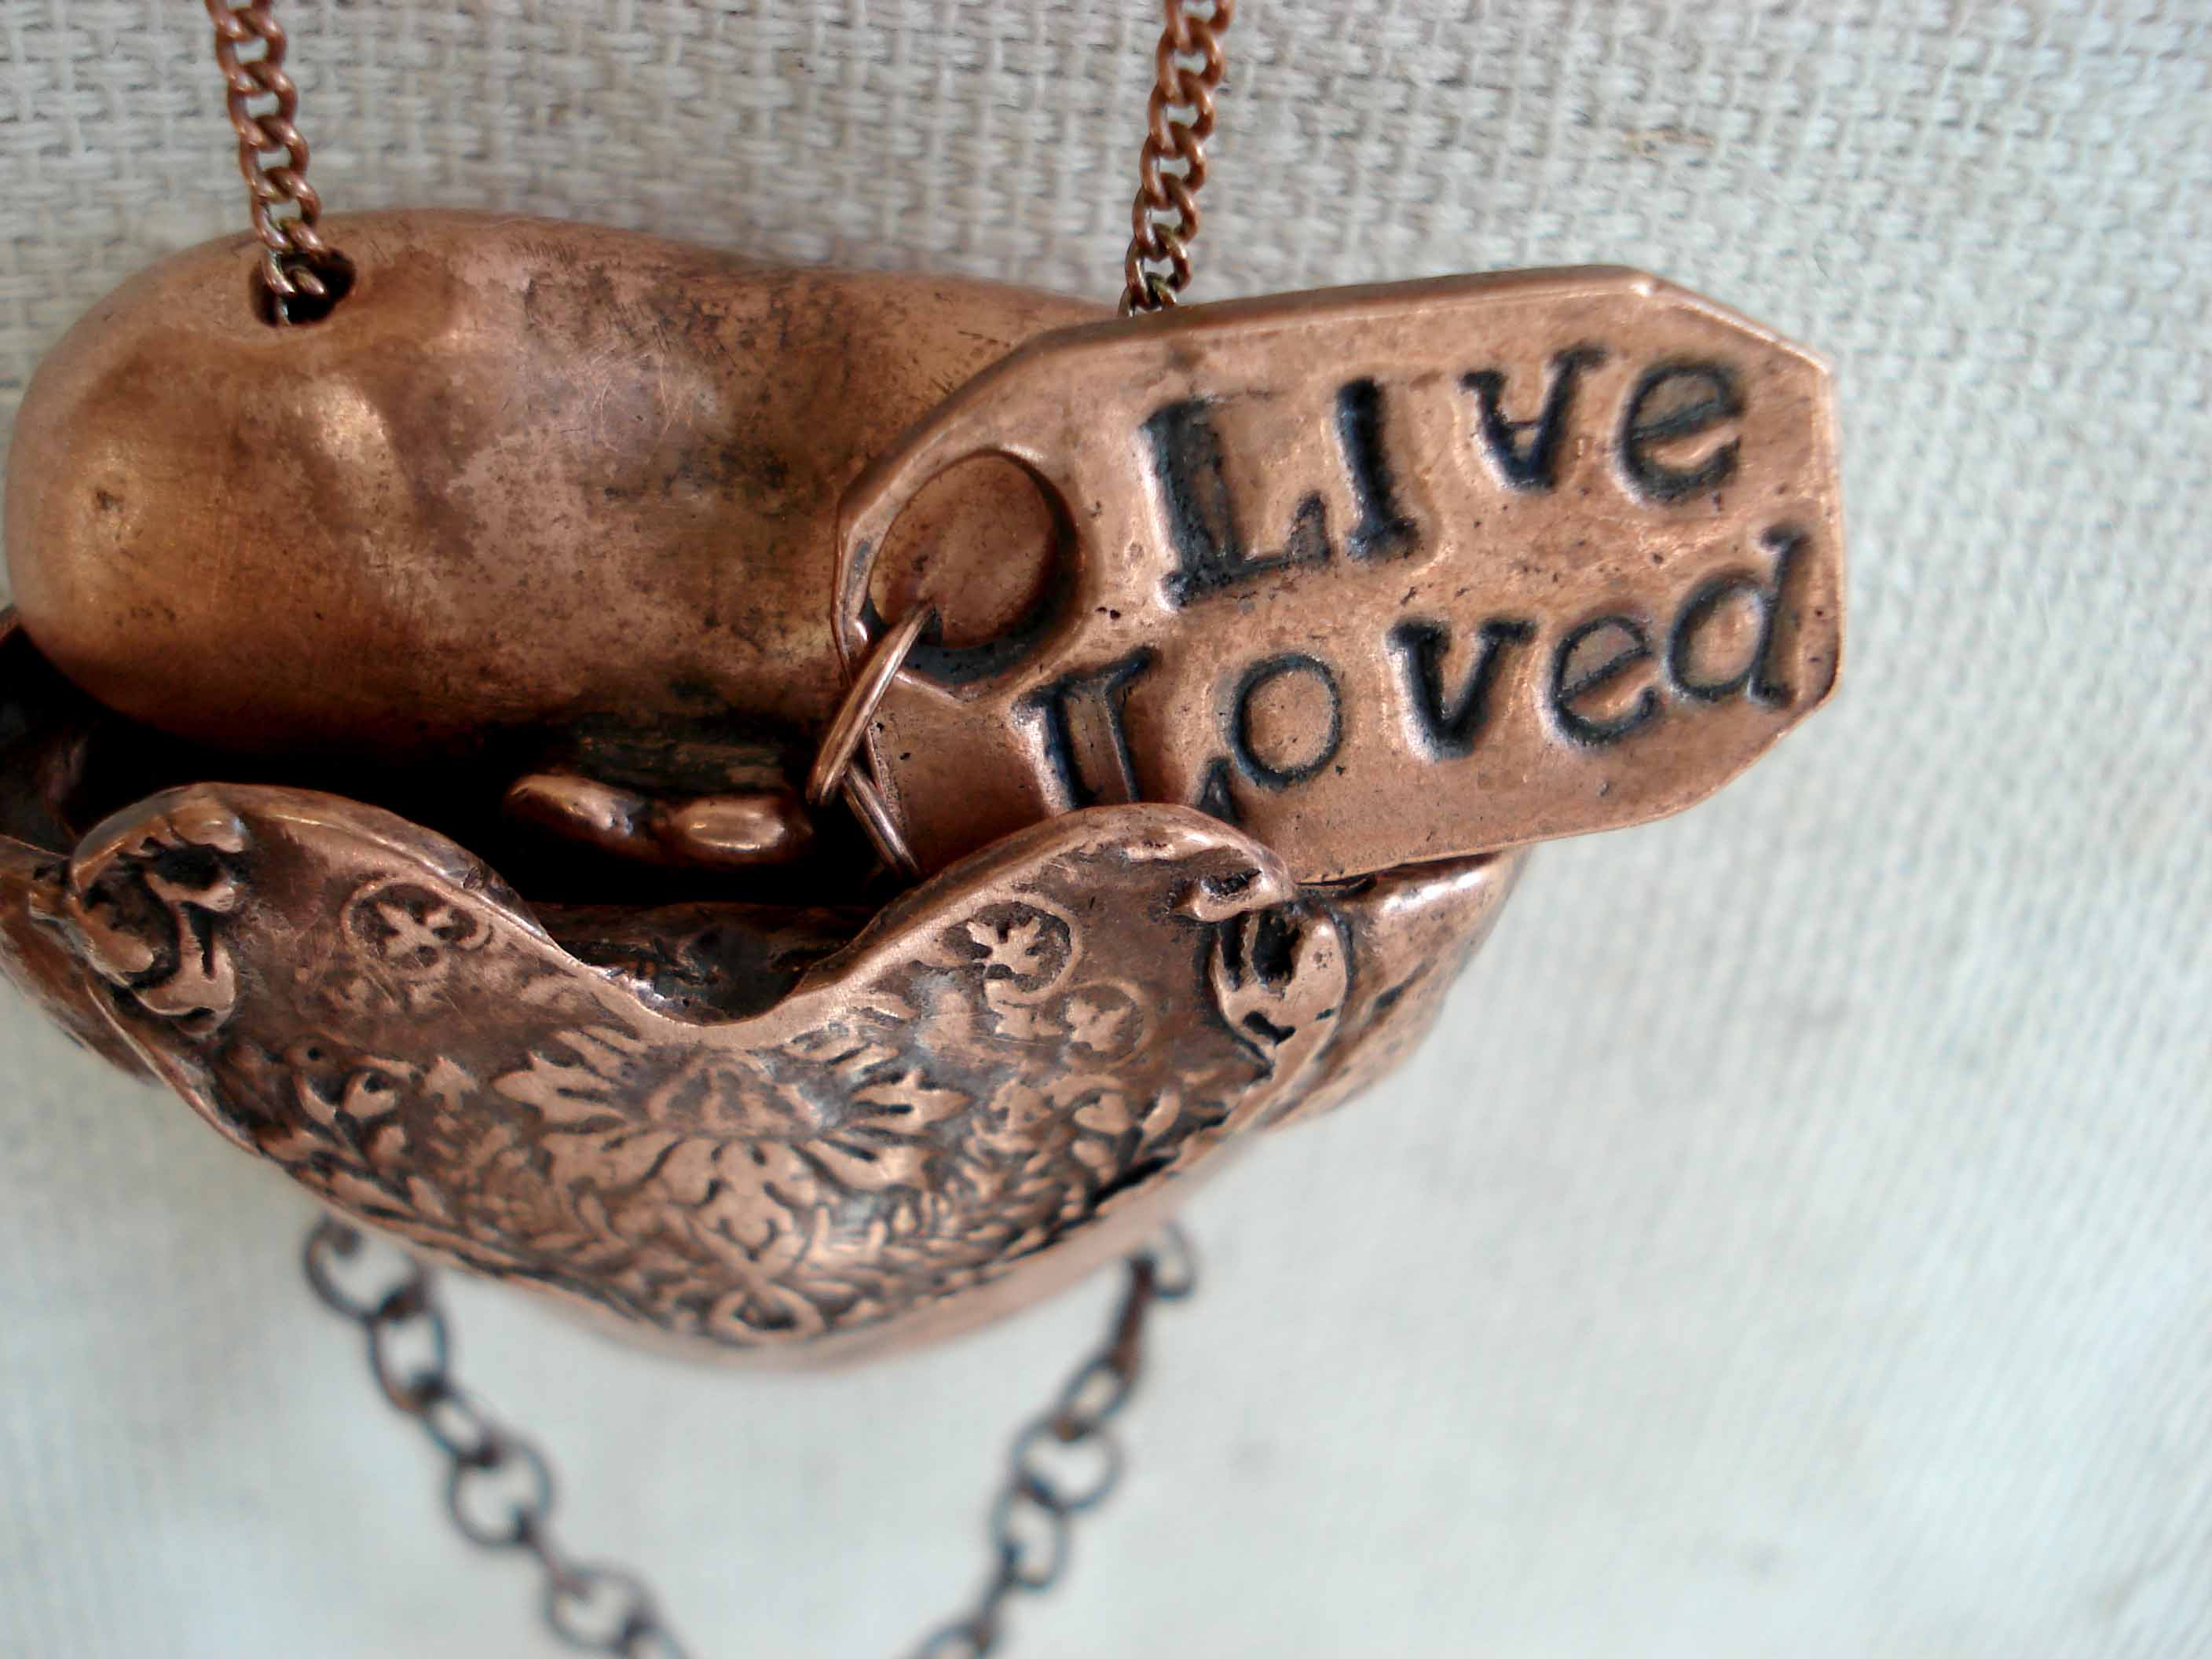 Picture of Live Loved Locket Box